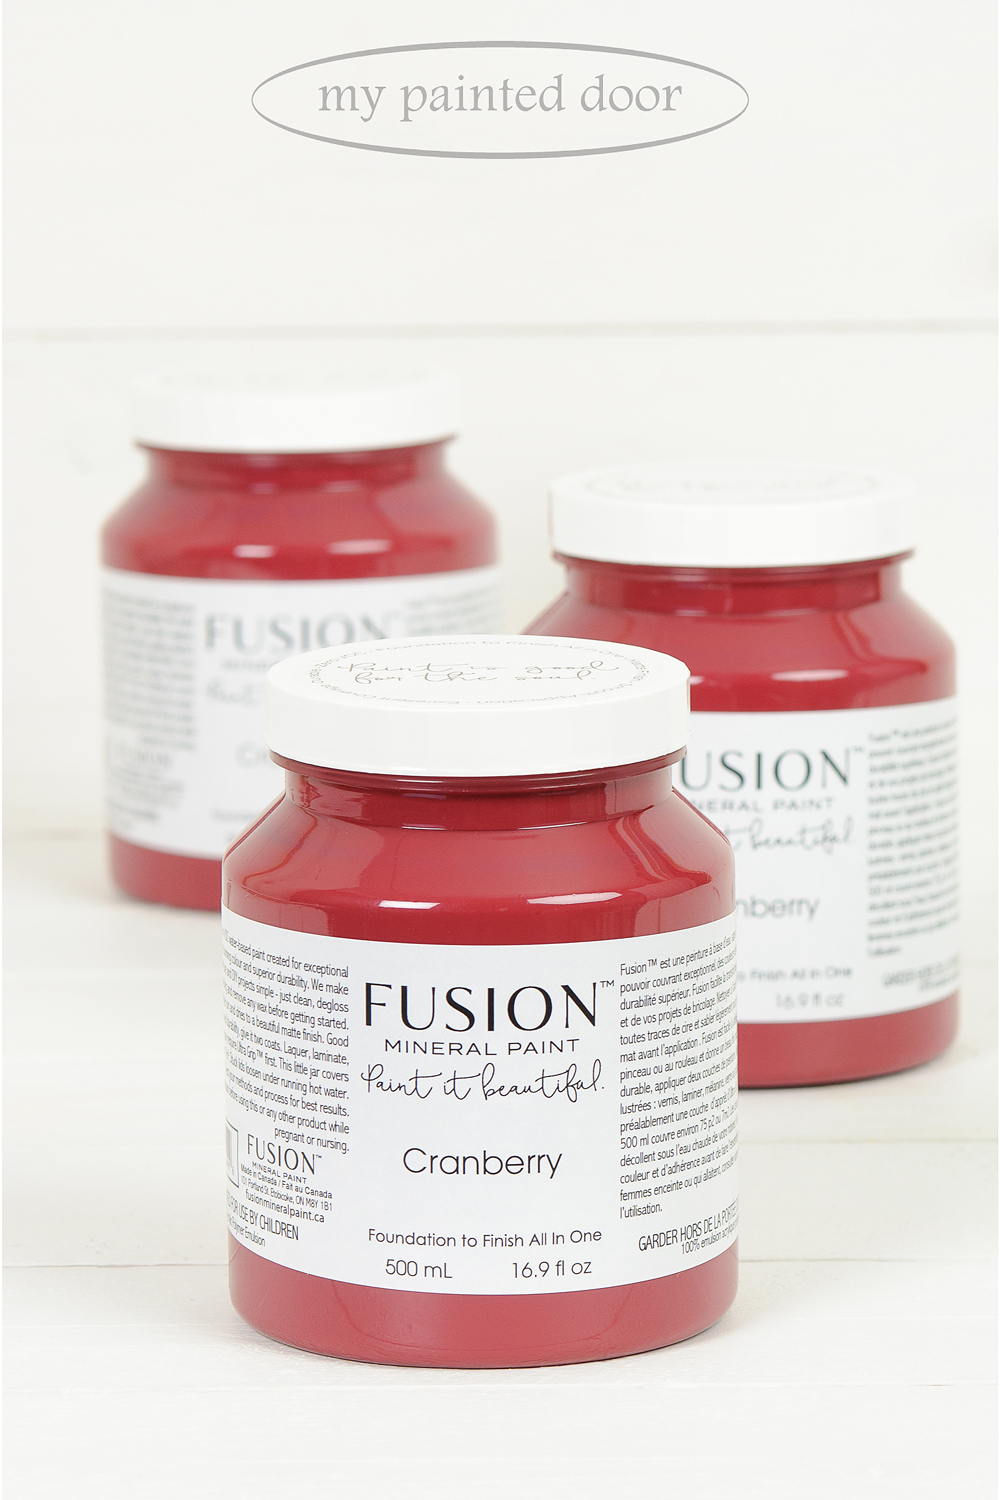 Cranberry ▪ A natural luscious burgundy red reminiscent of cranberries. A true statement colour. Fusion Mineral Paint available at My Painted Door (.com)